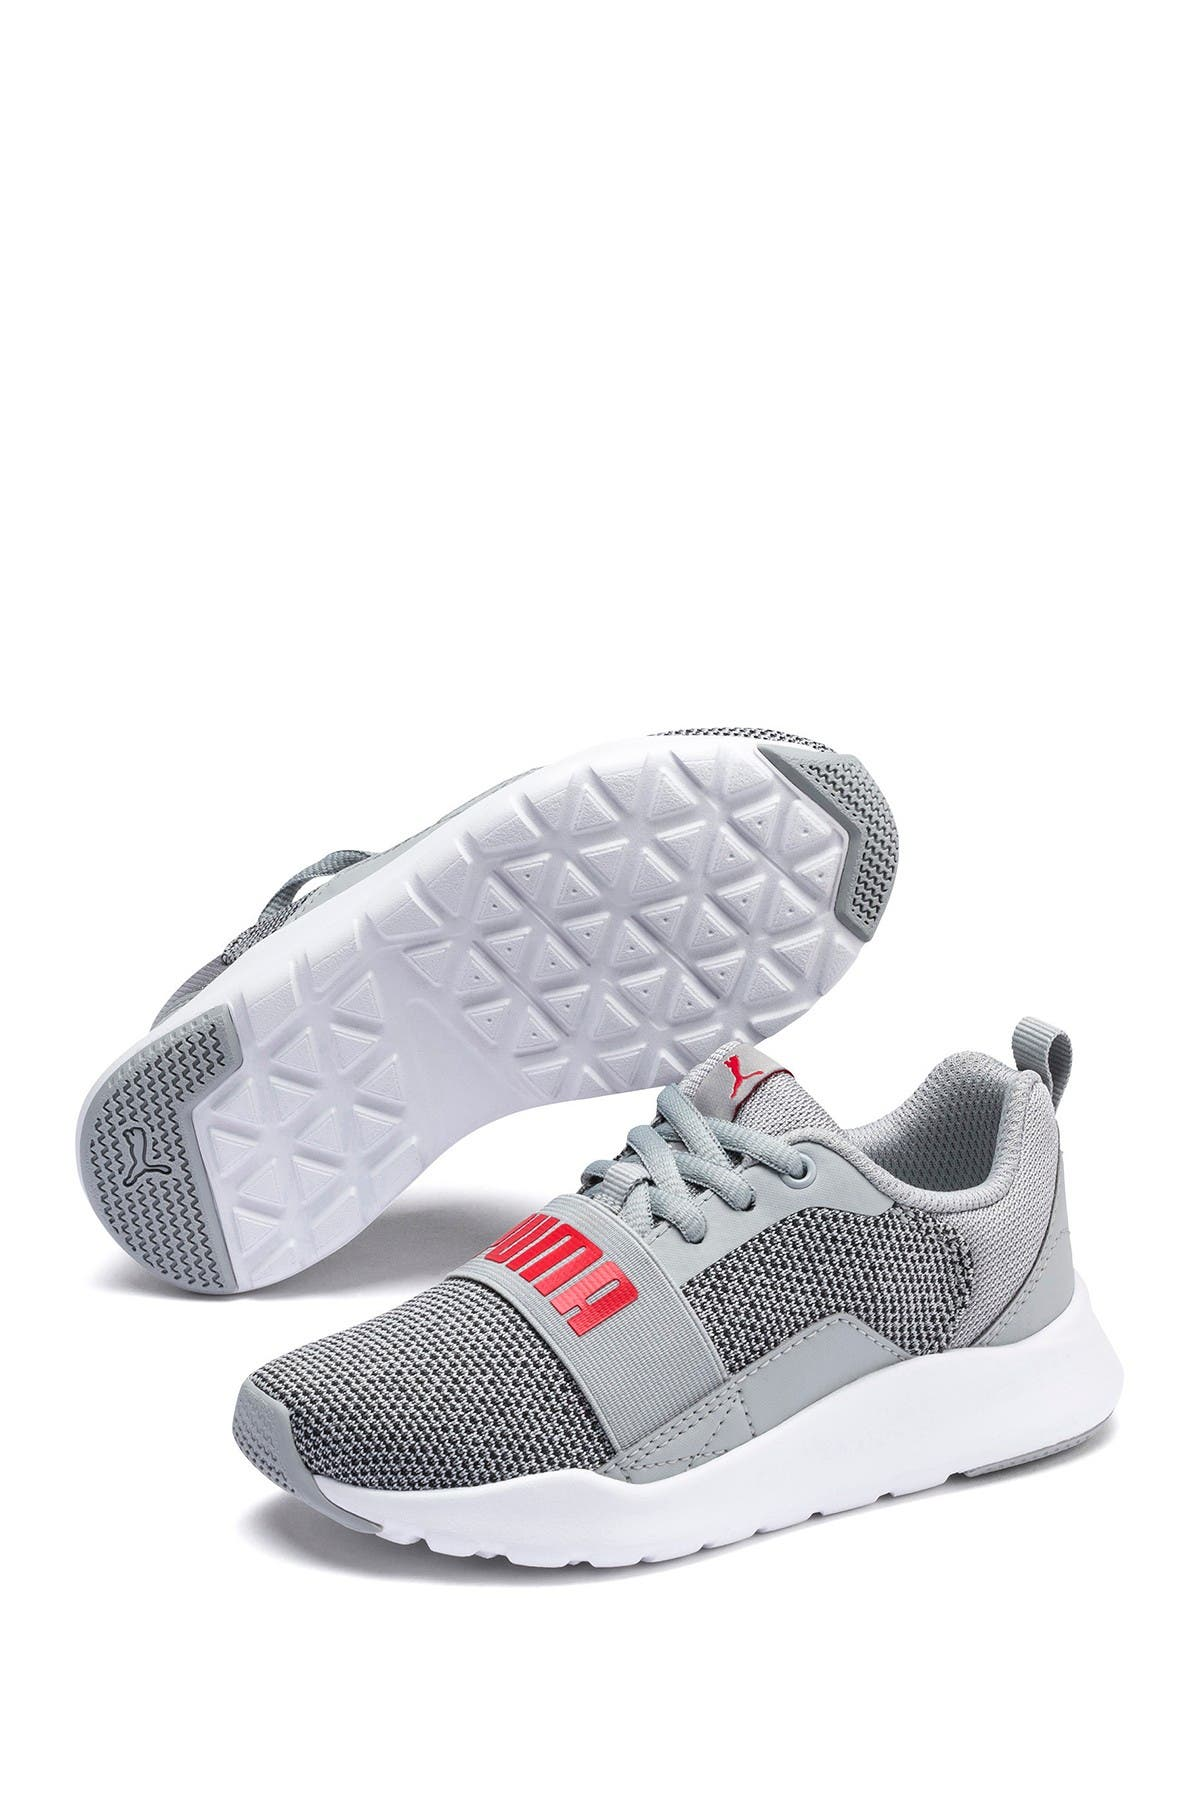 Image of PUMA Wired Knit Sneaker